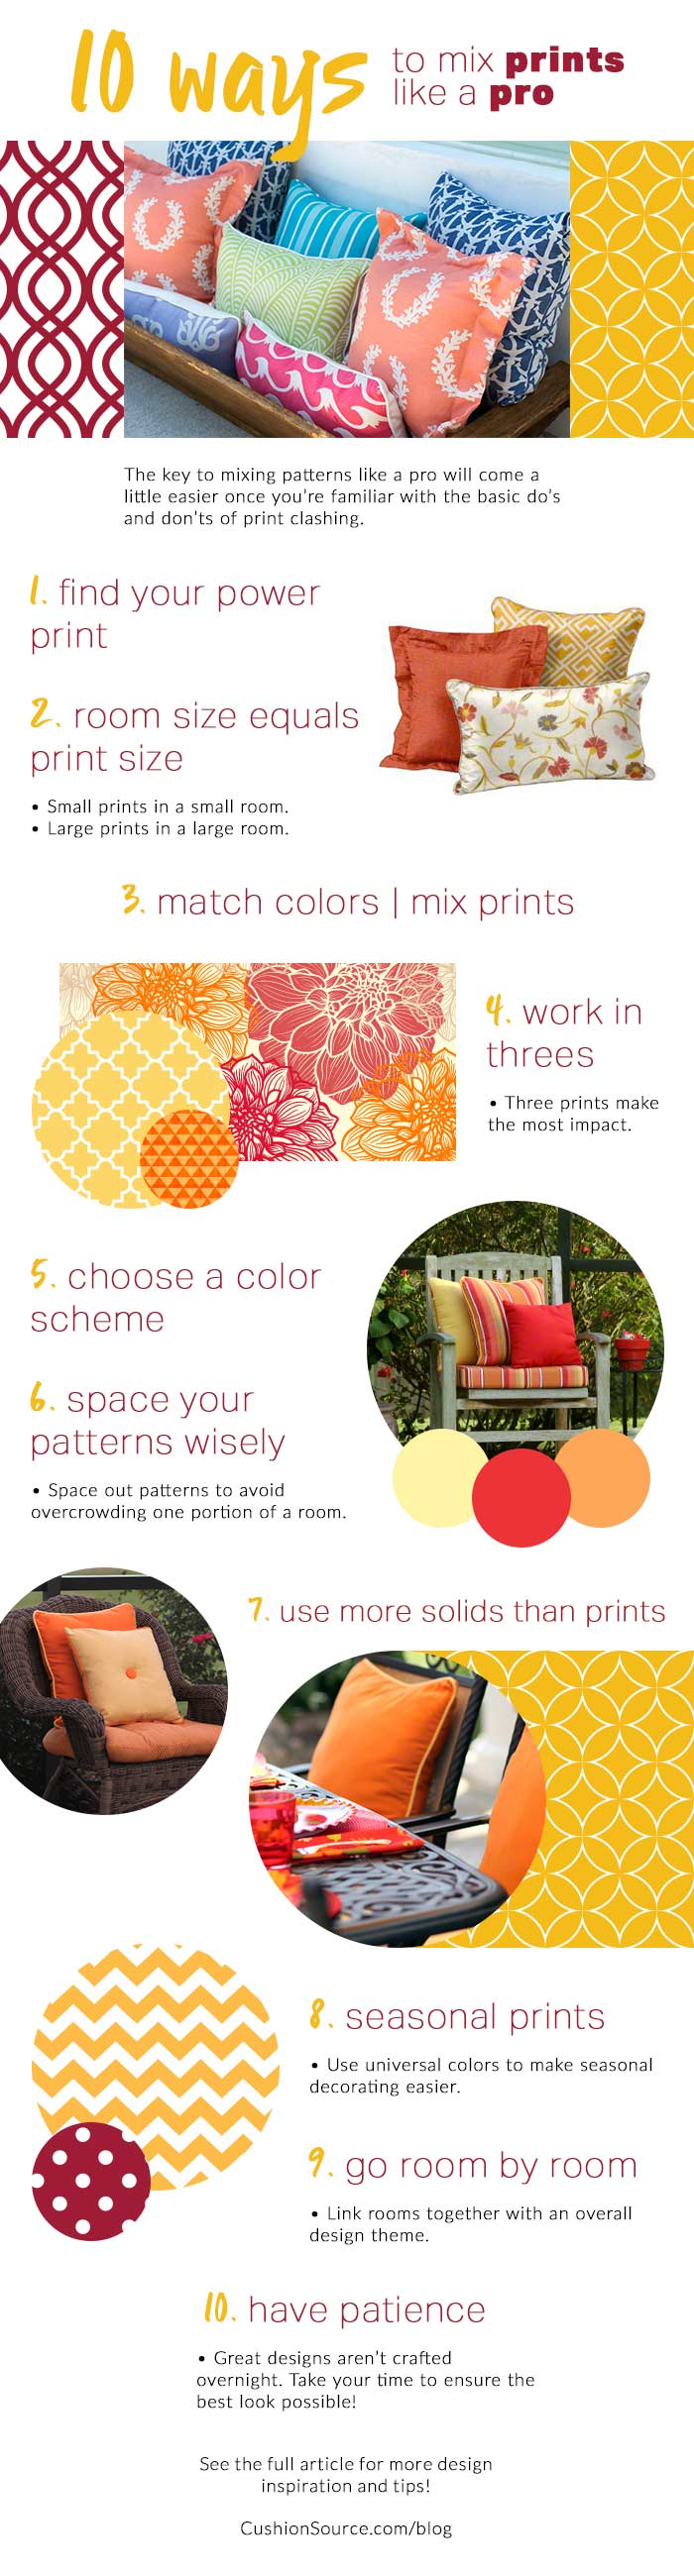 Mixing prints in your home doesn't have to be a chore. Learn how to mix prints like a pro.